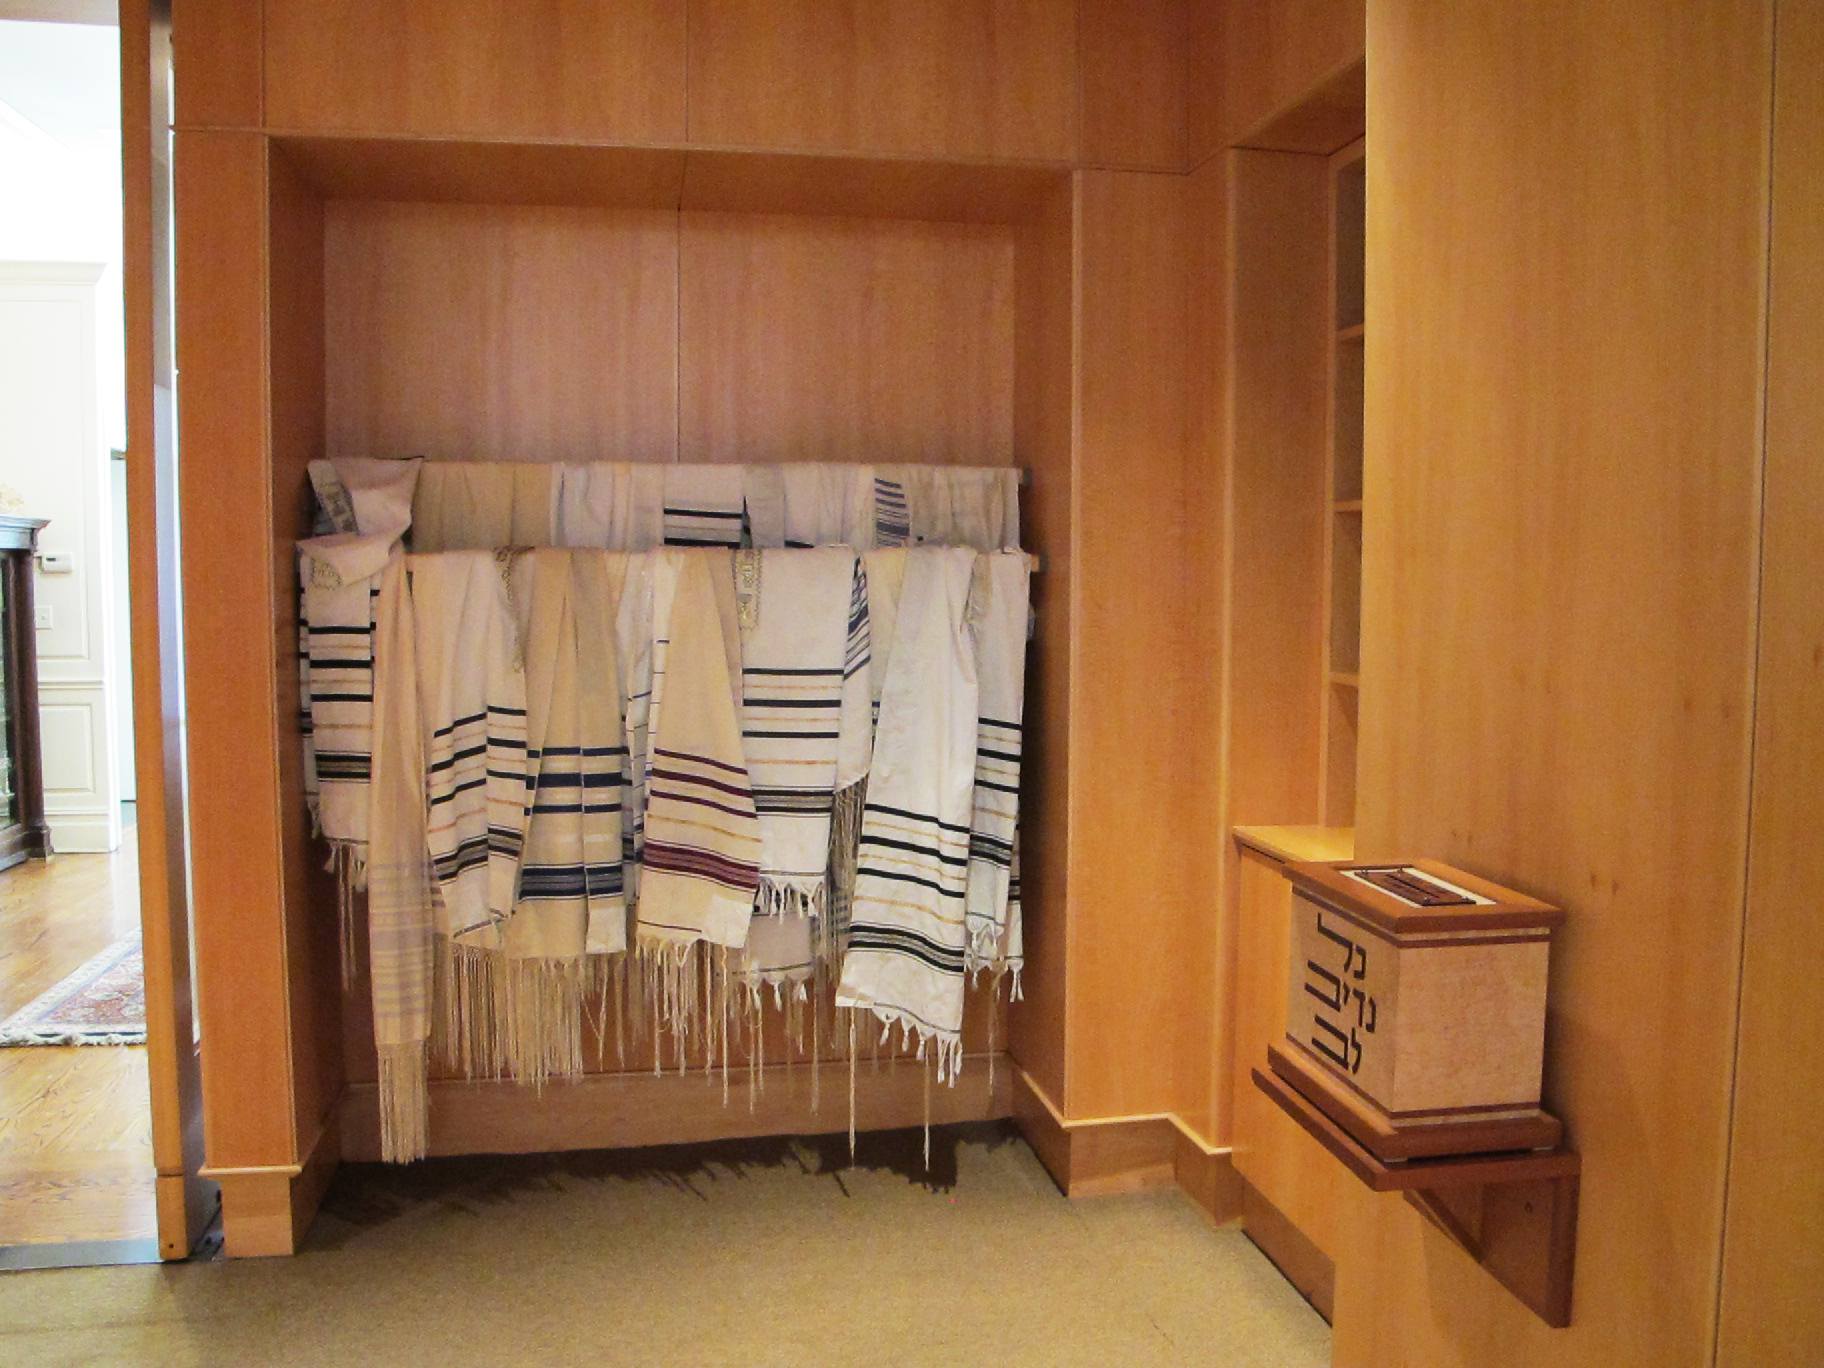 Tallit Racks and Charity Boxes